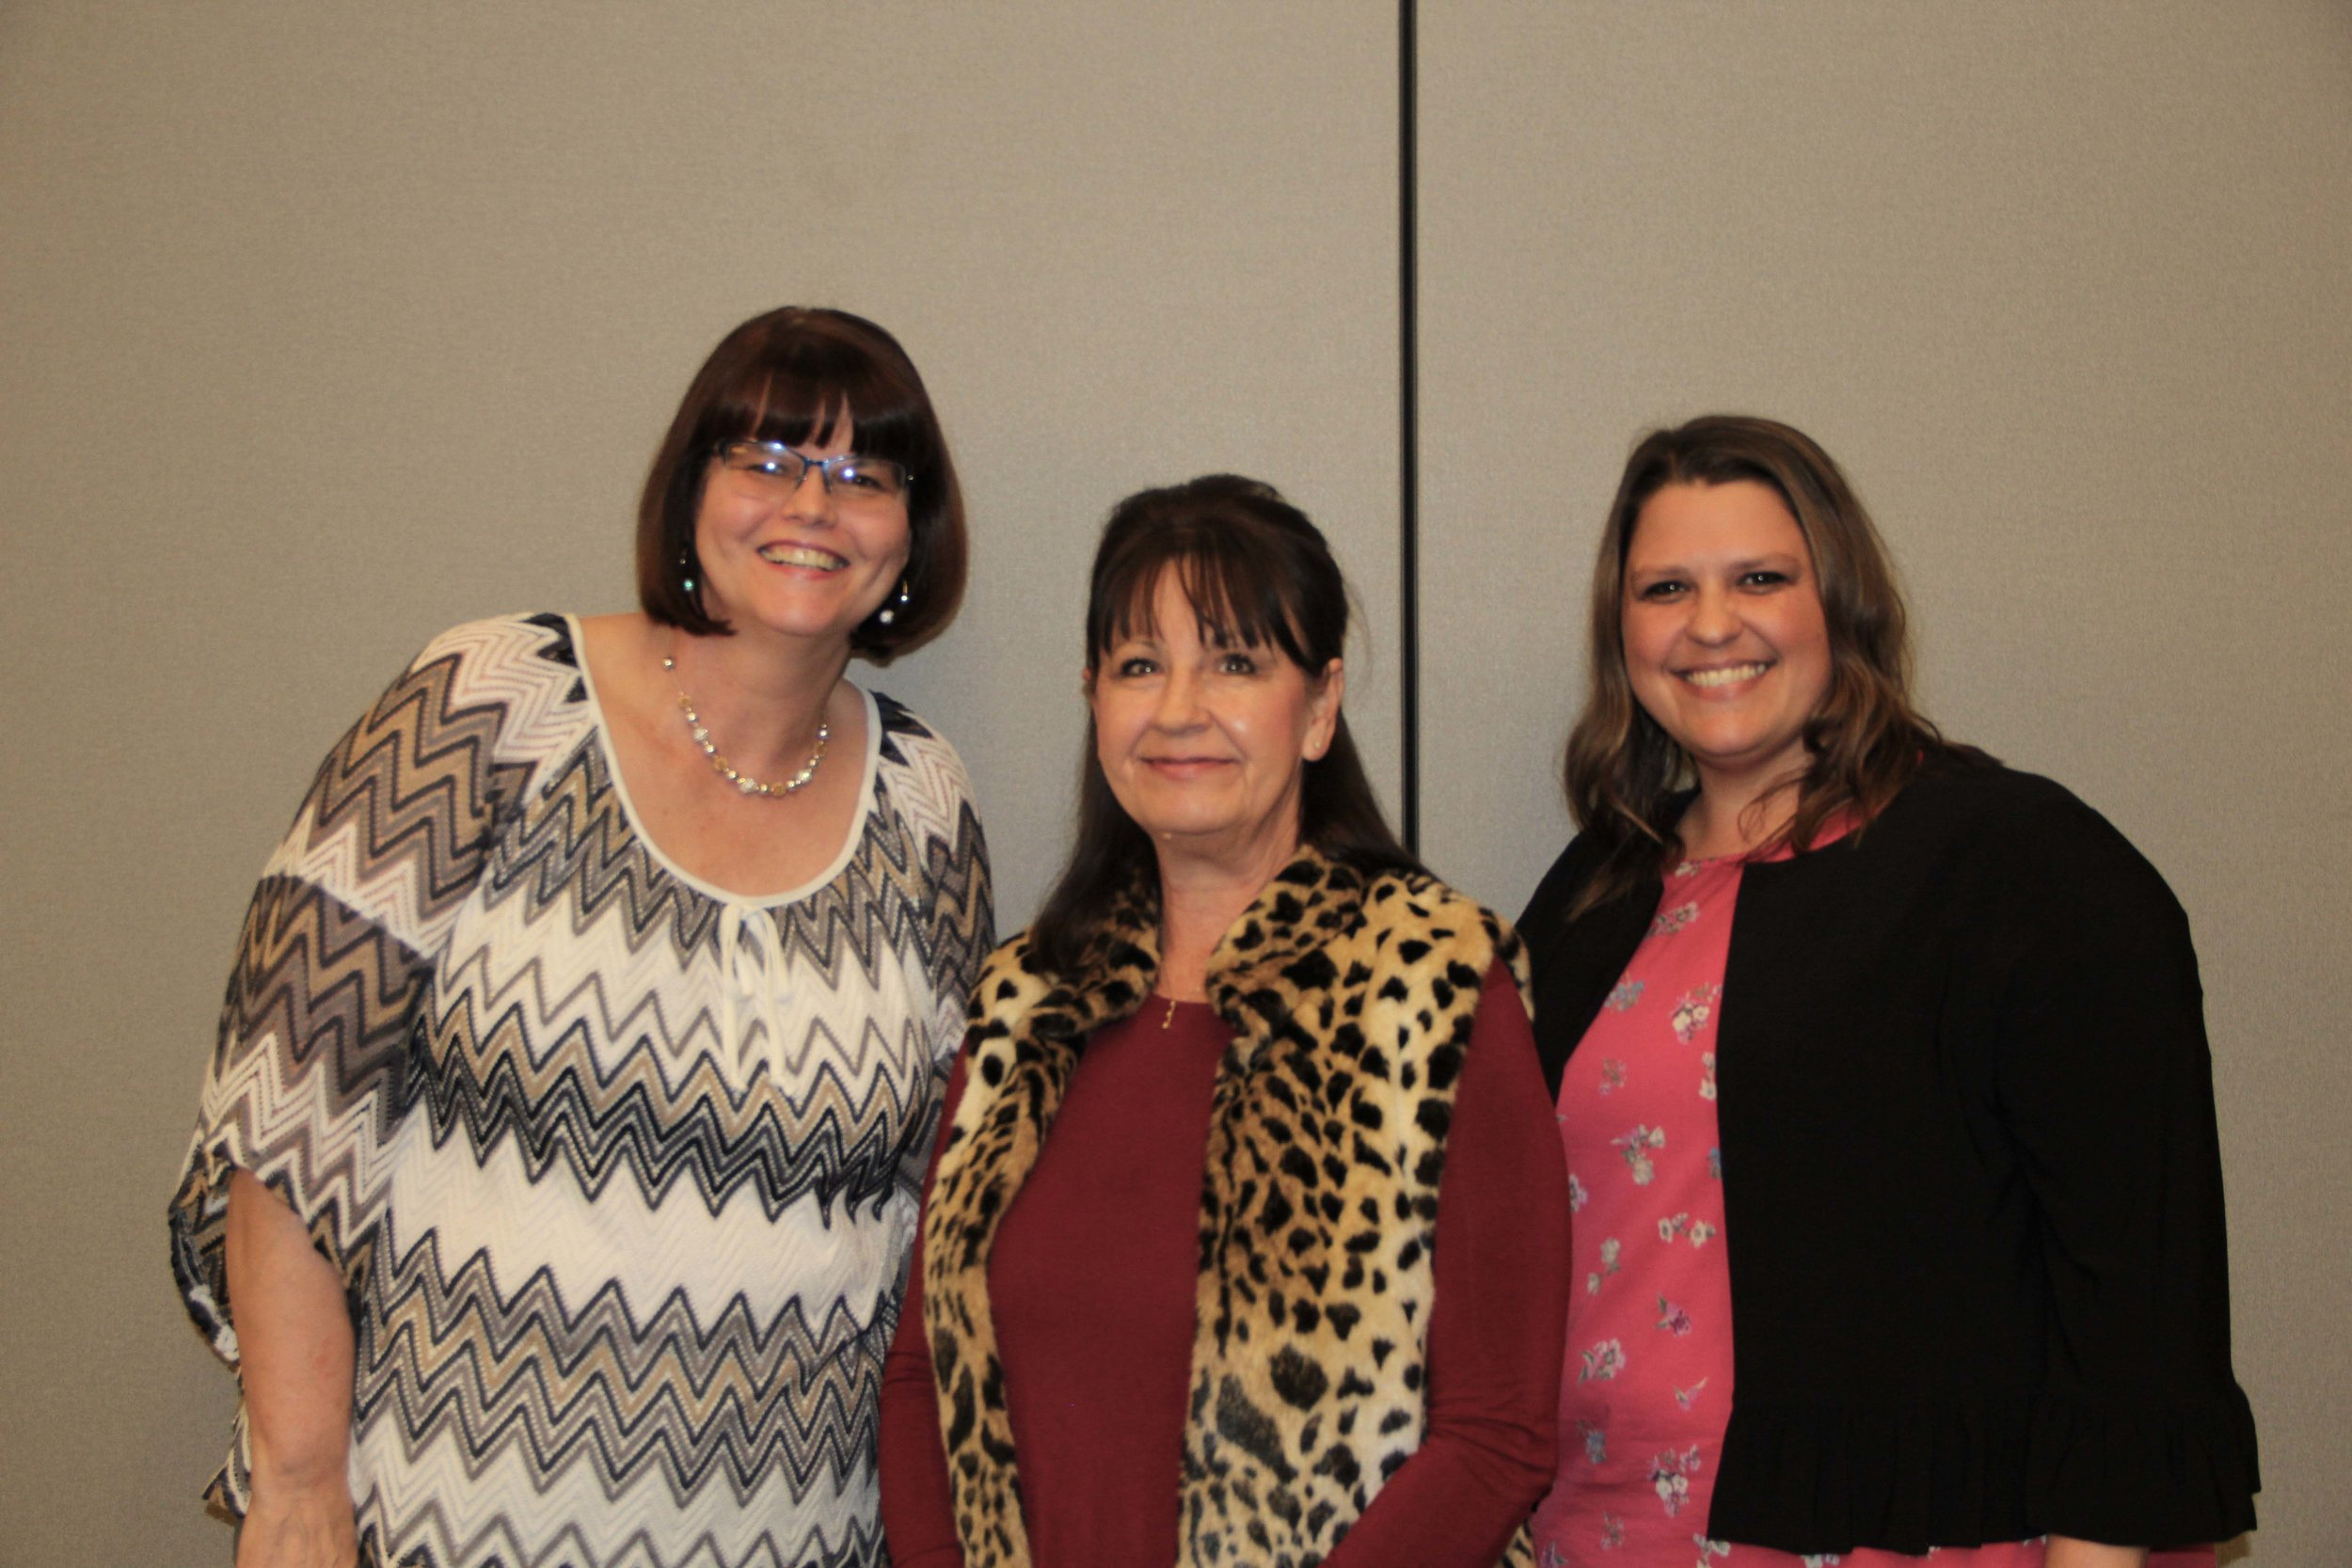 Tammy Danley, Kay Shirley and Lanette Holt